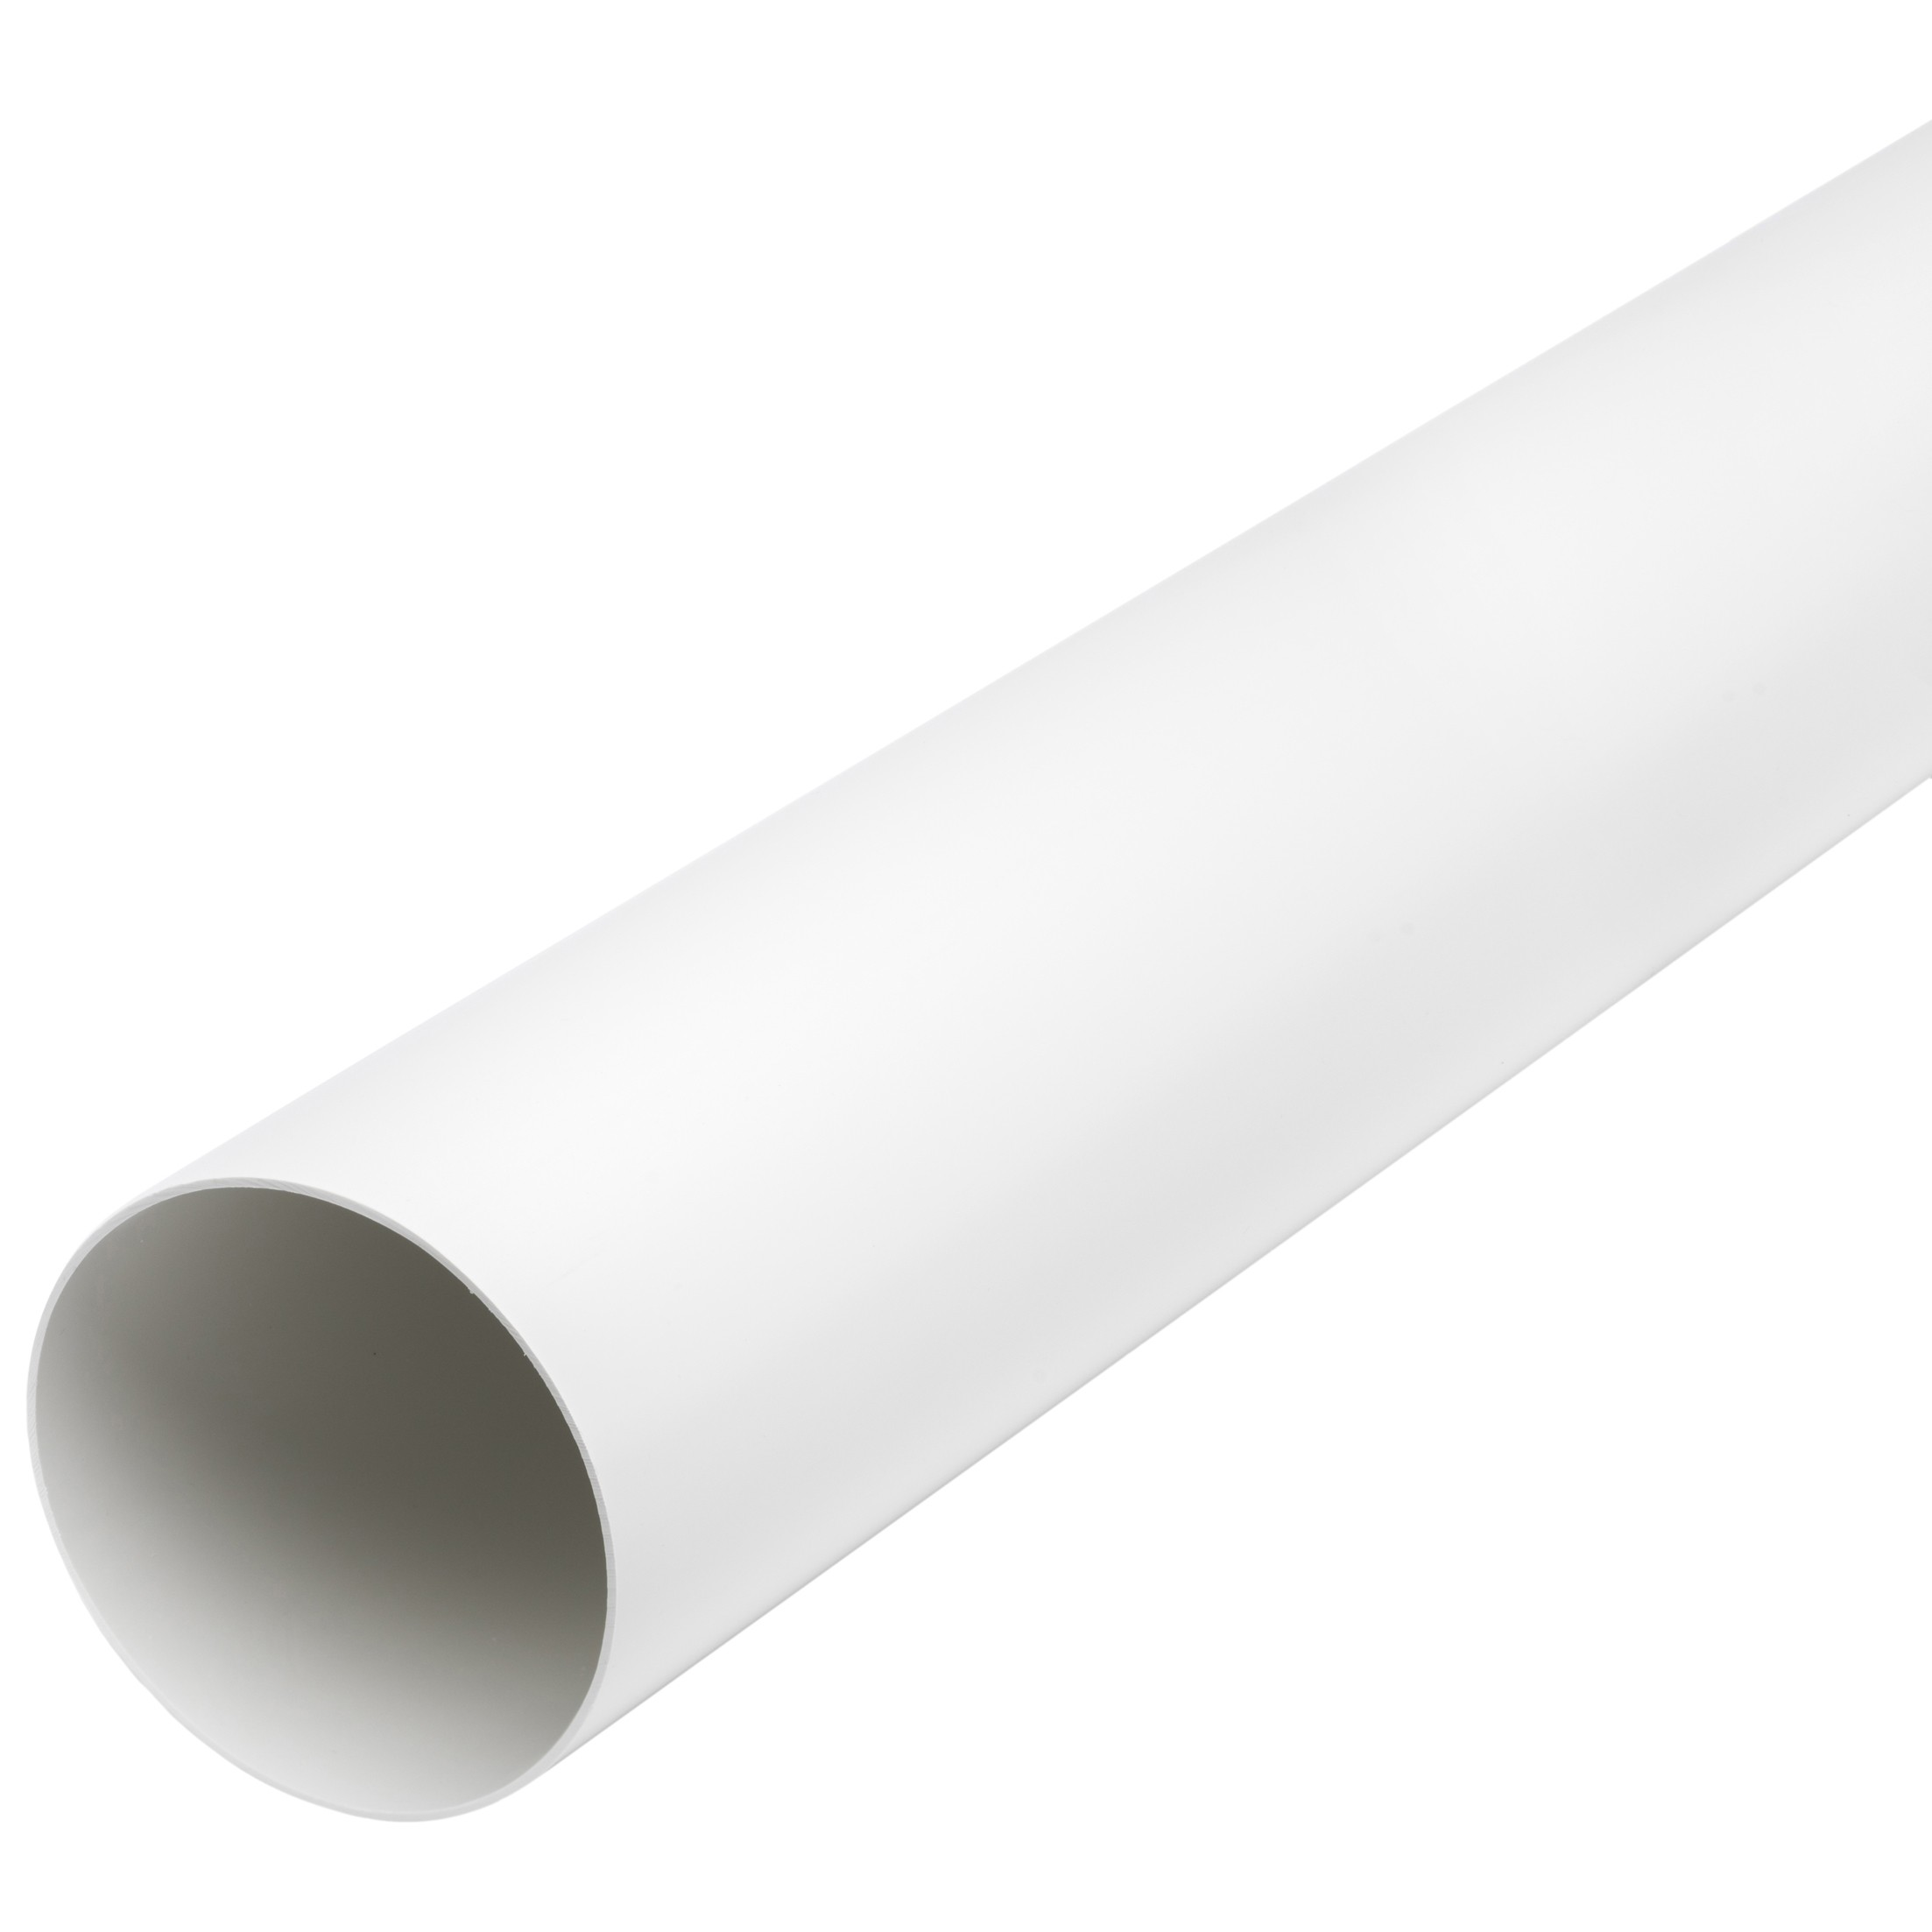 Manrose Round Ducting Pipe - White, 120mm, 1 metre